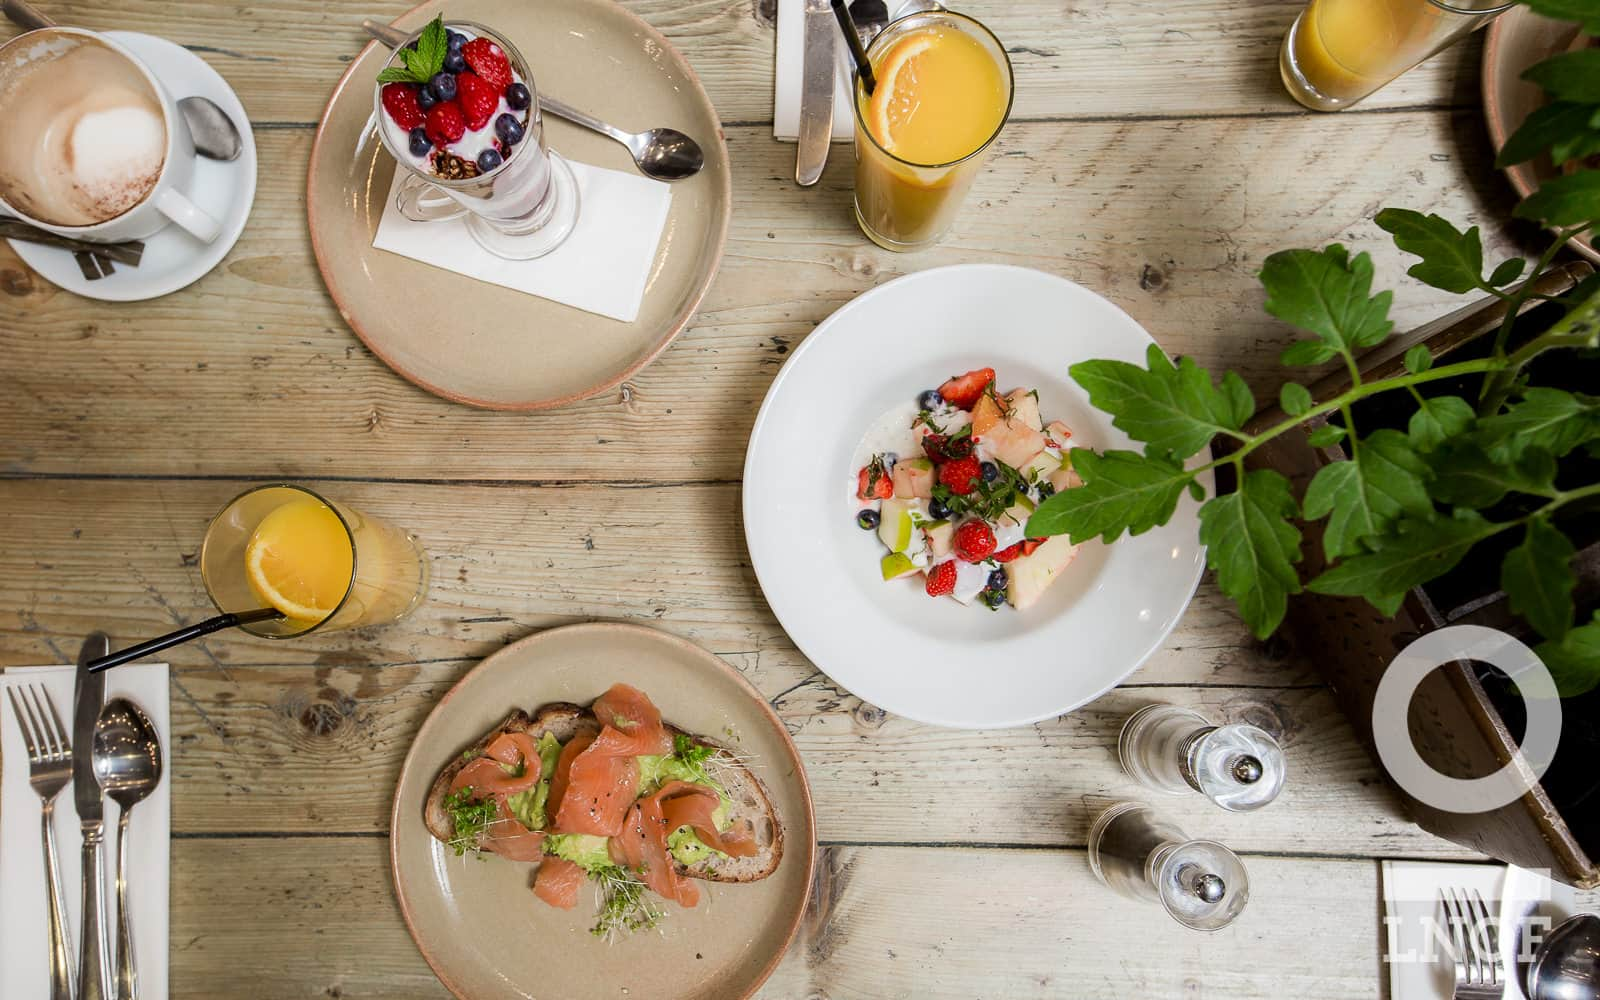 Hangover breakfasts at Garden Kitchen in Newcastle upon Tyne